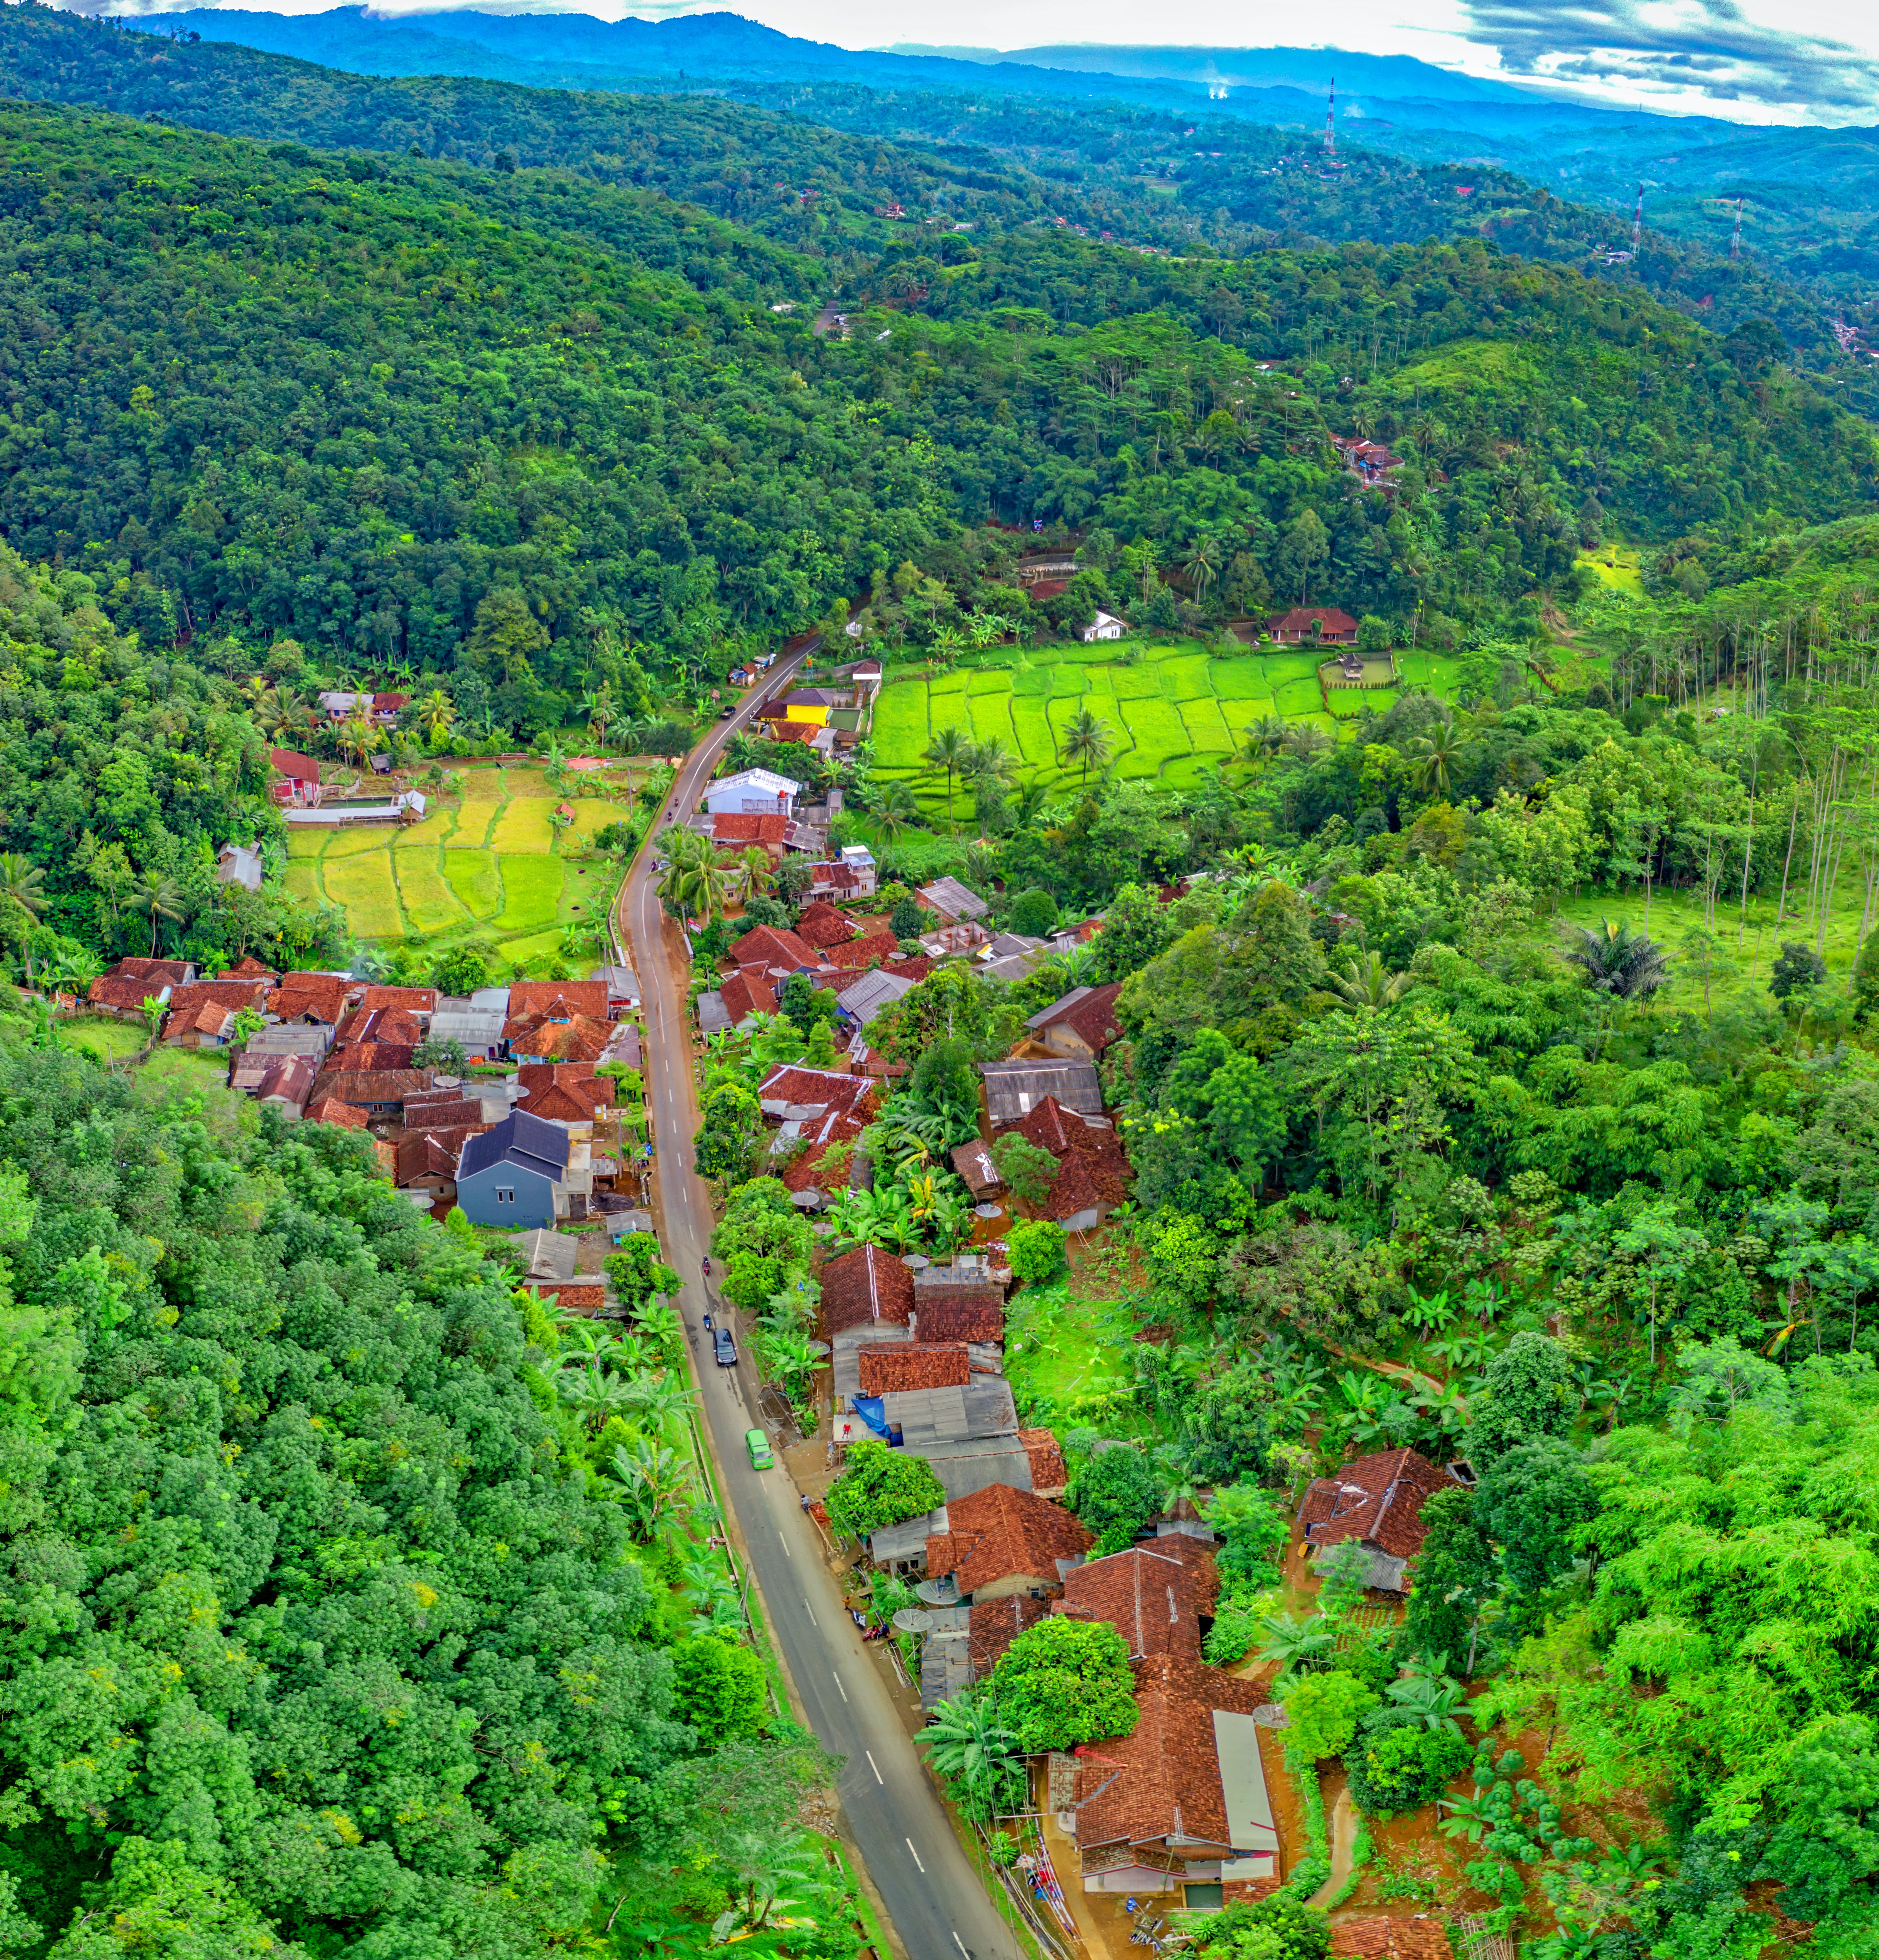 Aerial Photo of Houses Near Road Surrounded by Forest